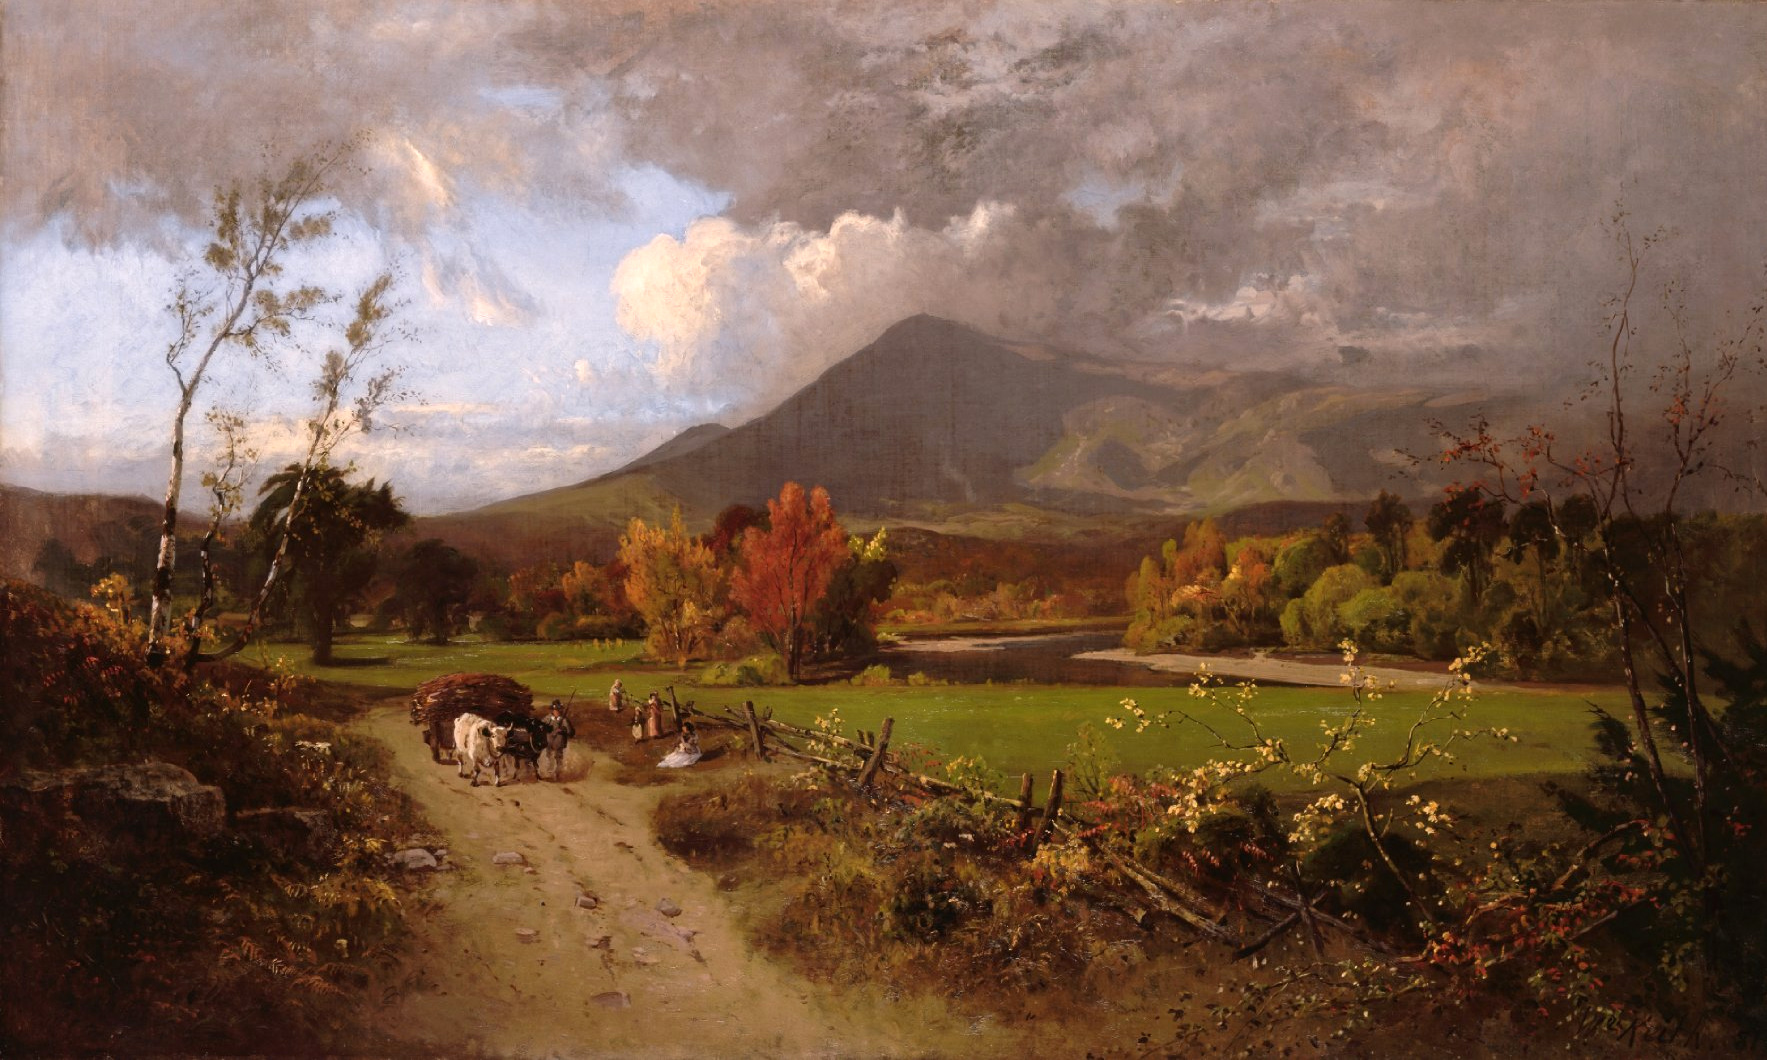 Western Oil Painting Montana